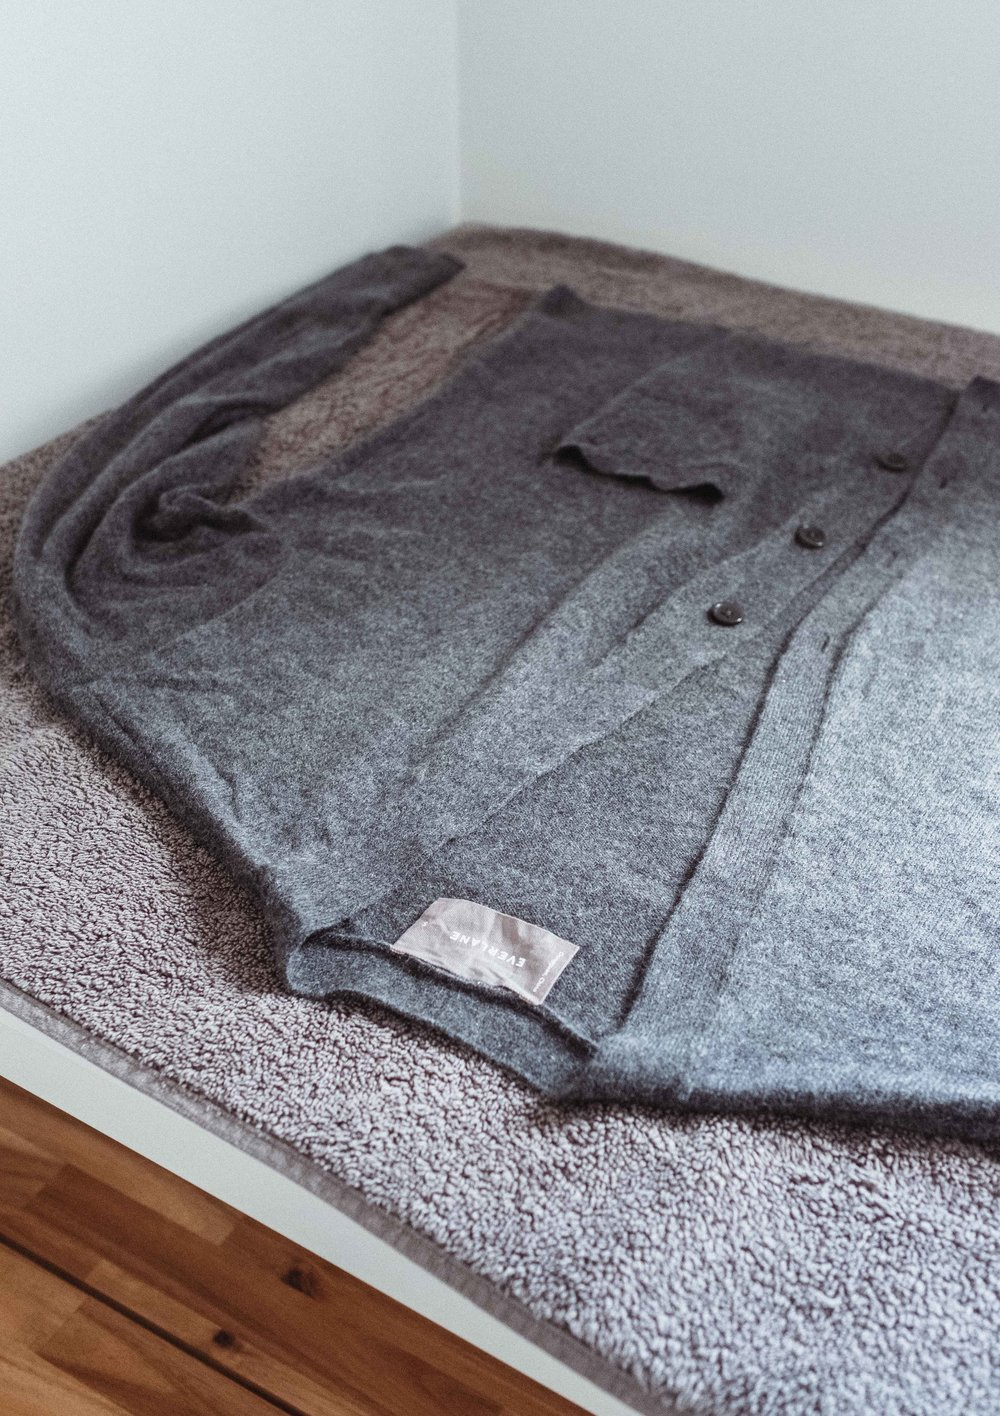 Step 9:  finally, reshape your sweater again and lay it out on the towel to dry